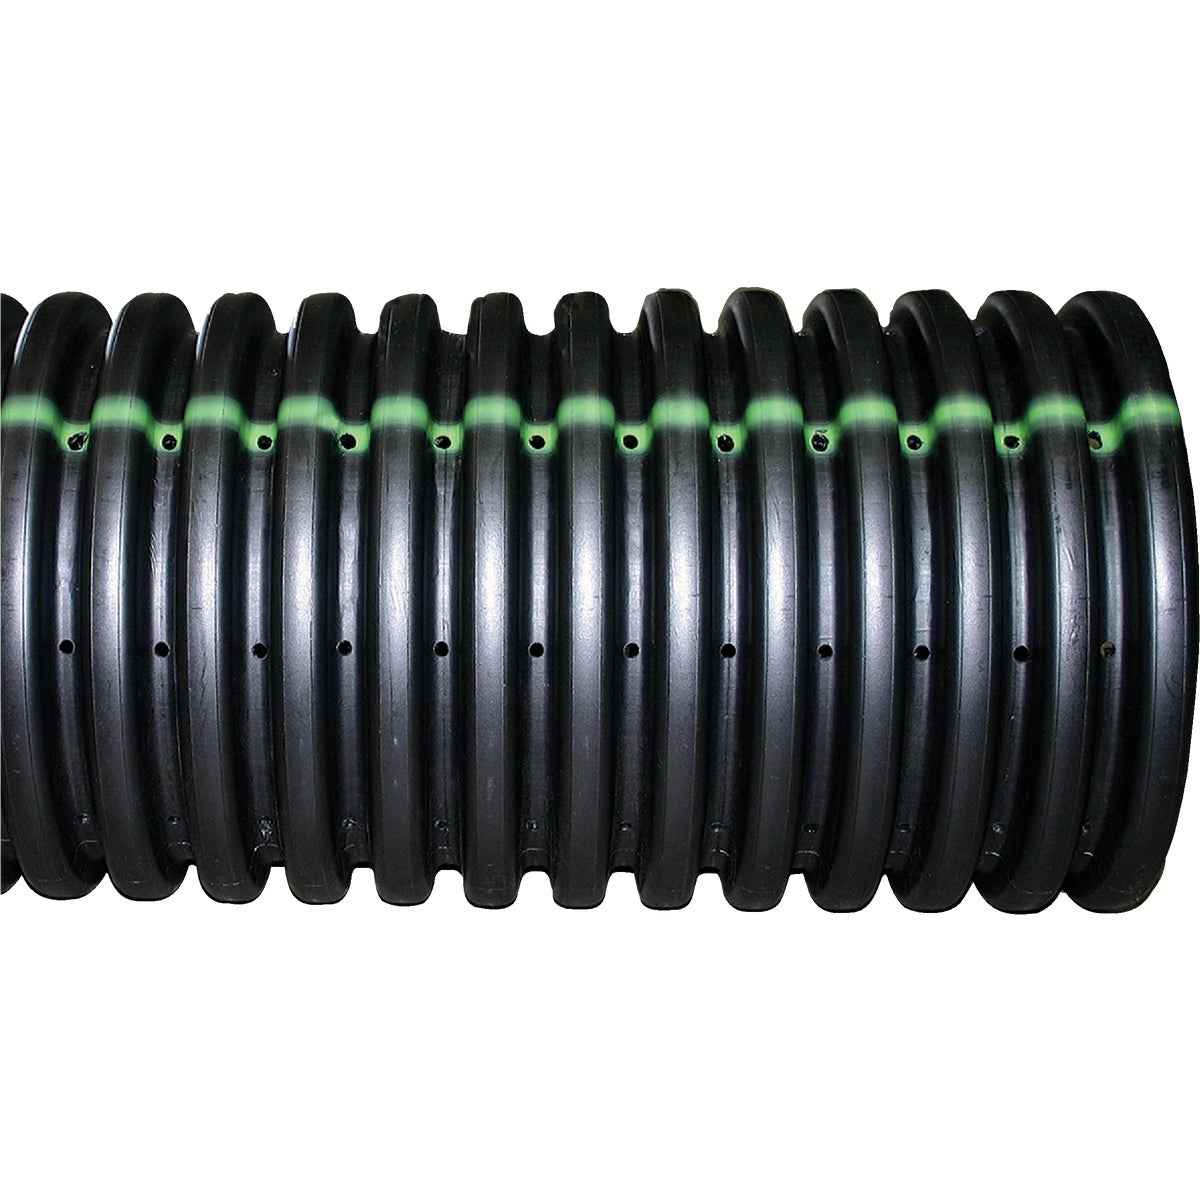 "4""X10' SLOTTED PIPE - 404-010 by Advanced Drainage Sy"